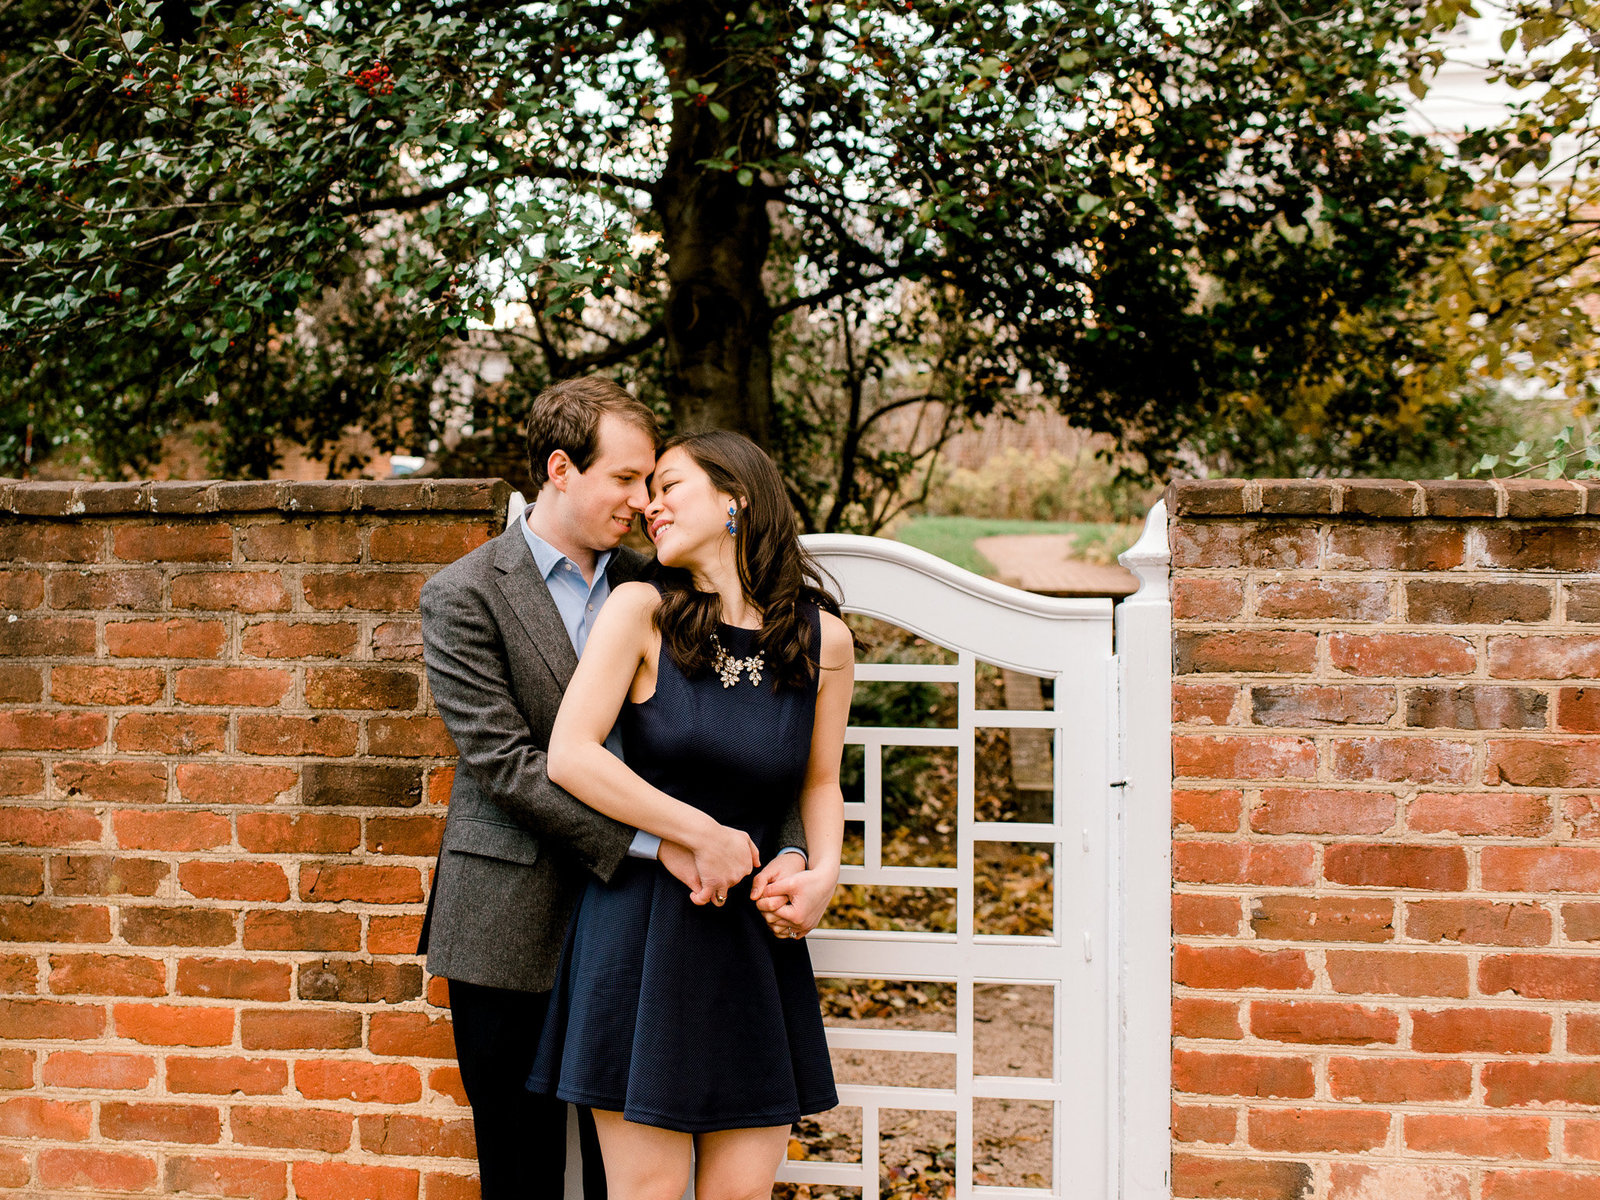 FACEBOOK-Monica and Justin Engagement Session-15